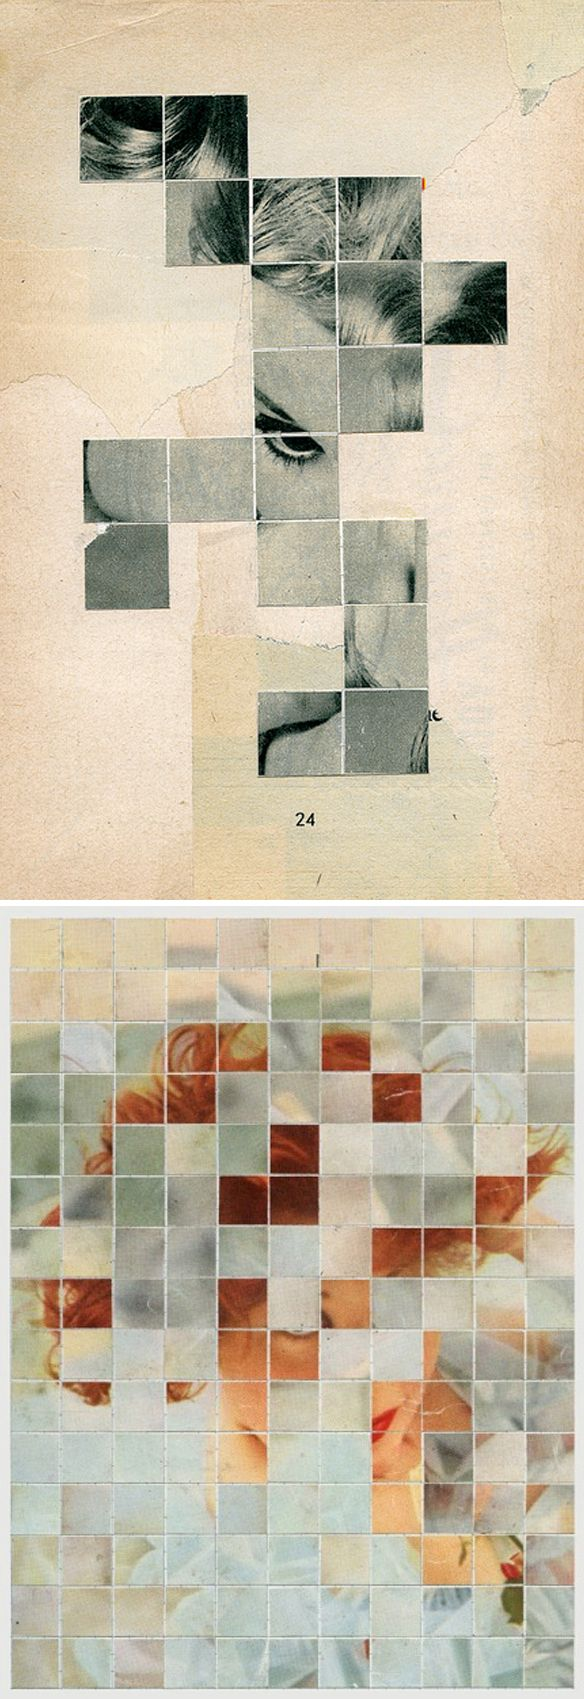 anthony gerace - these images are so mesmerising